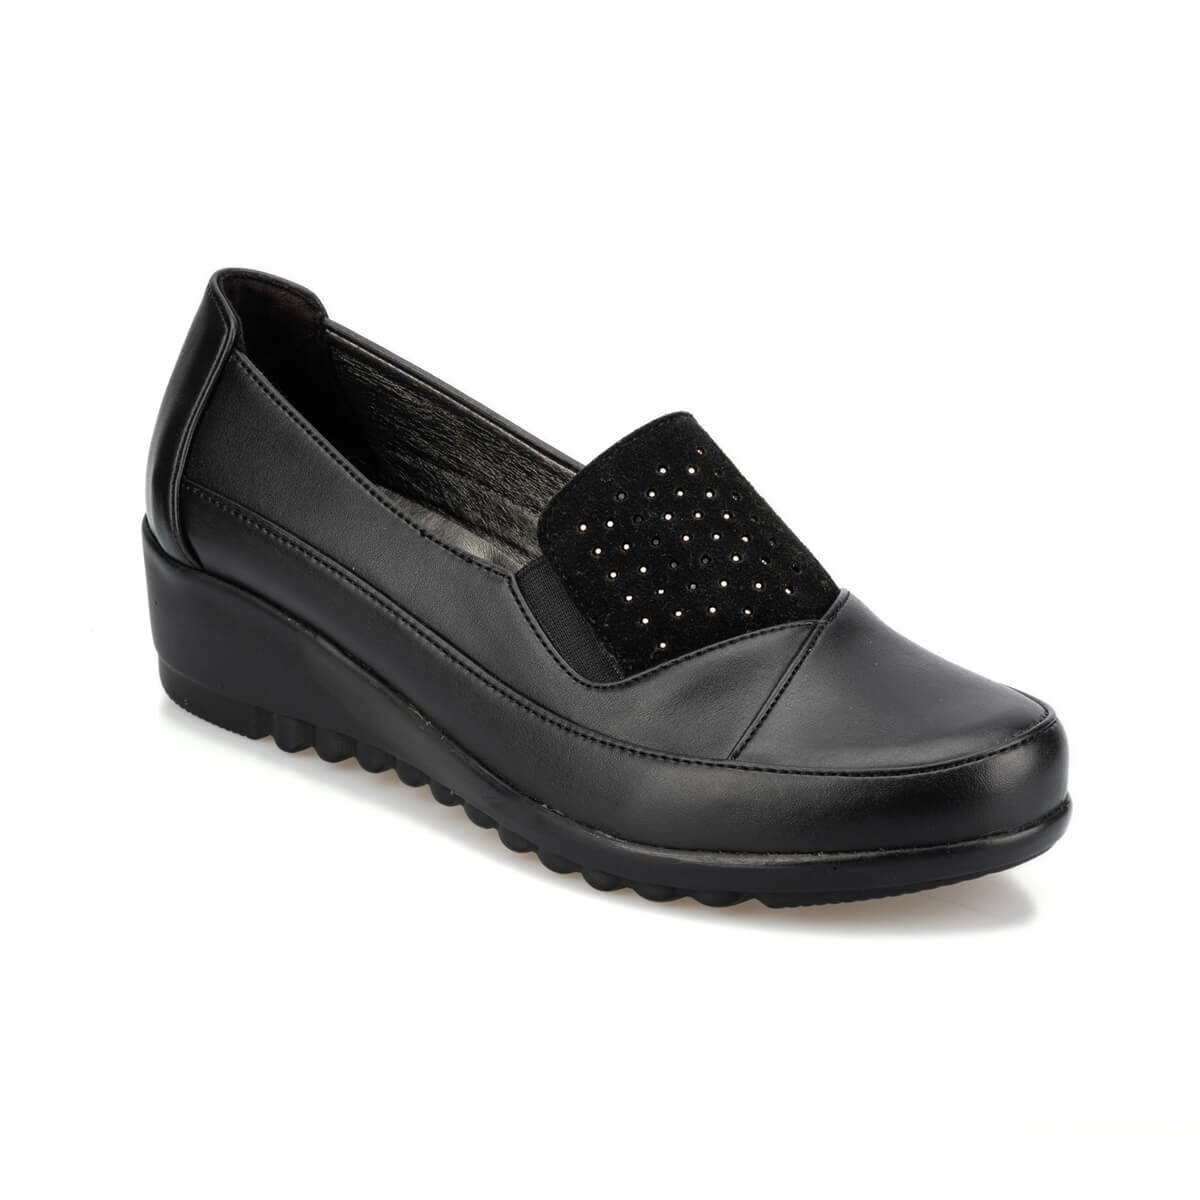 FLO 92.151052.Z Black Women 'S Wedges Shoes Polaris